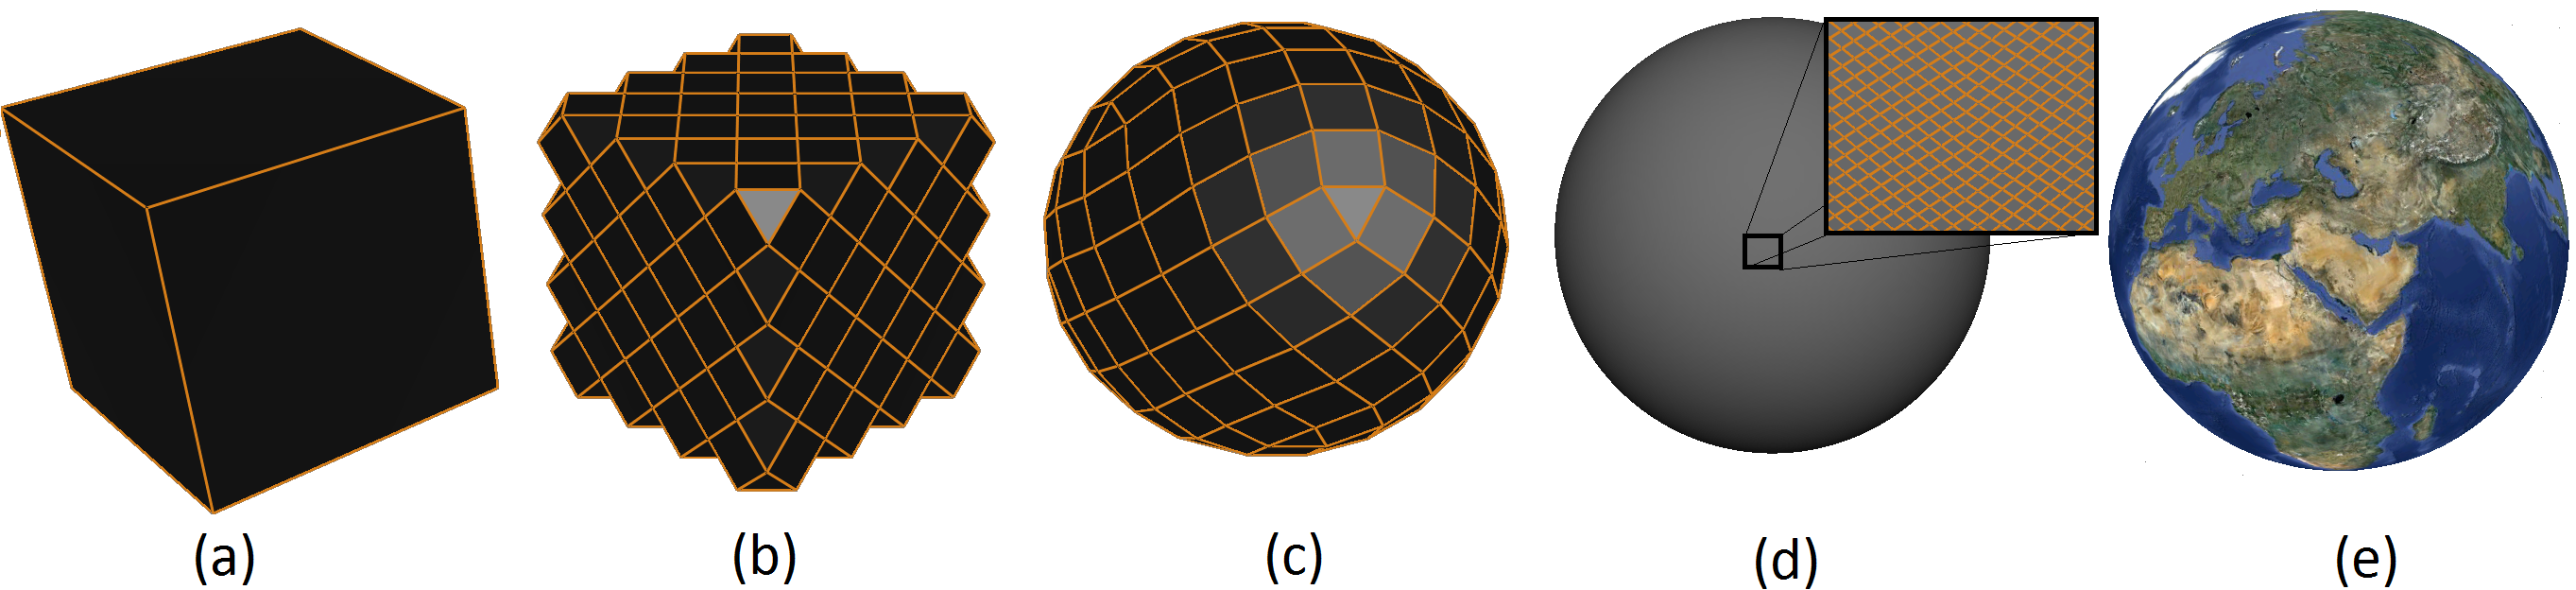 (a) A cube. (b) The cube after applying dual 1-to-2 refinement three times. (c) The refined cube is projected to the sphere using an equal area spherical projection. (d) The spherical cube at a high resolution. (e) The resulting spherical polyhedron is textured using a blue marble image.